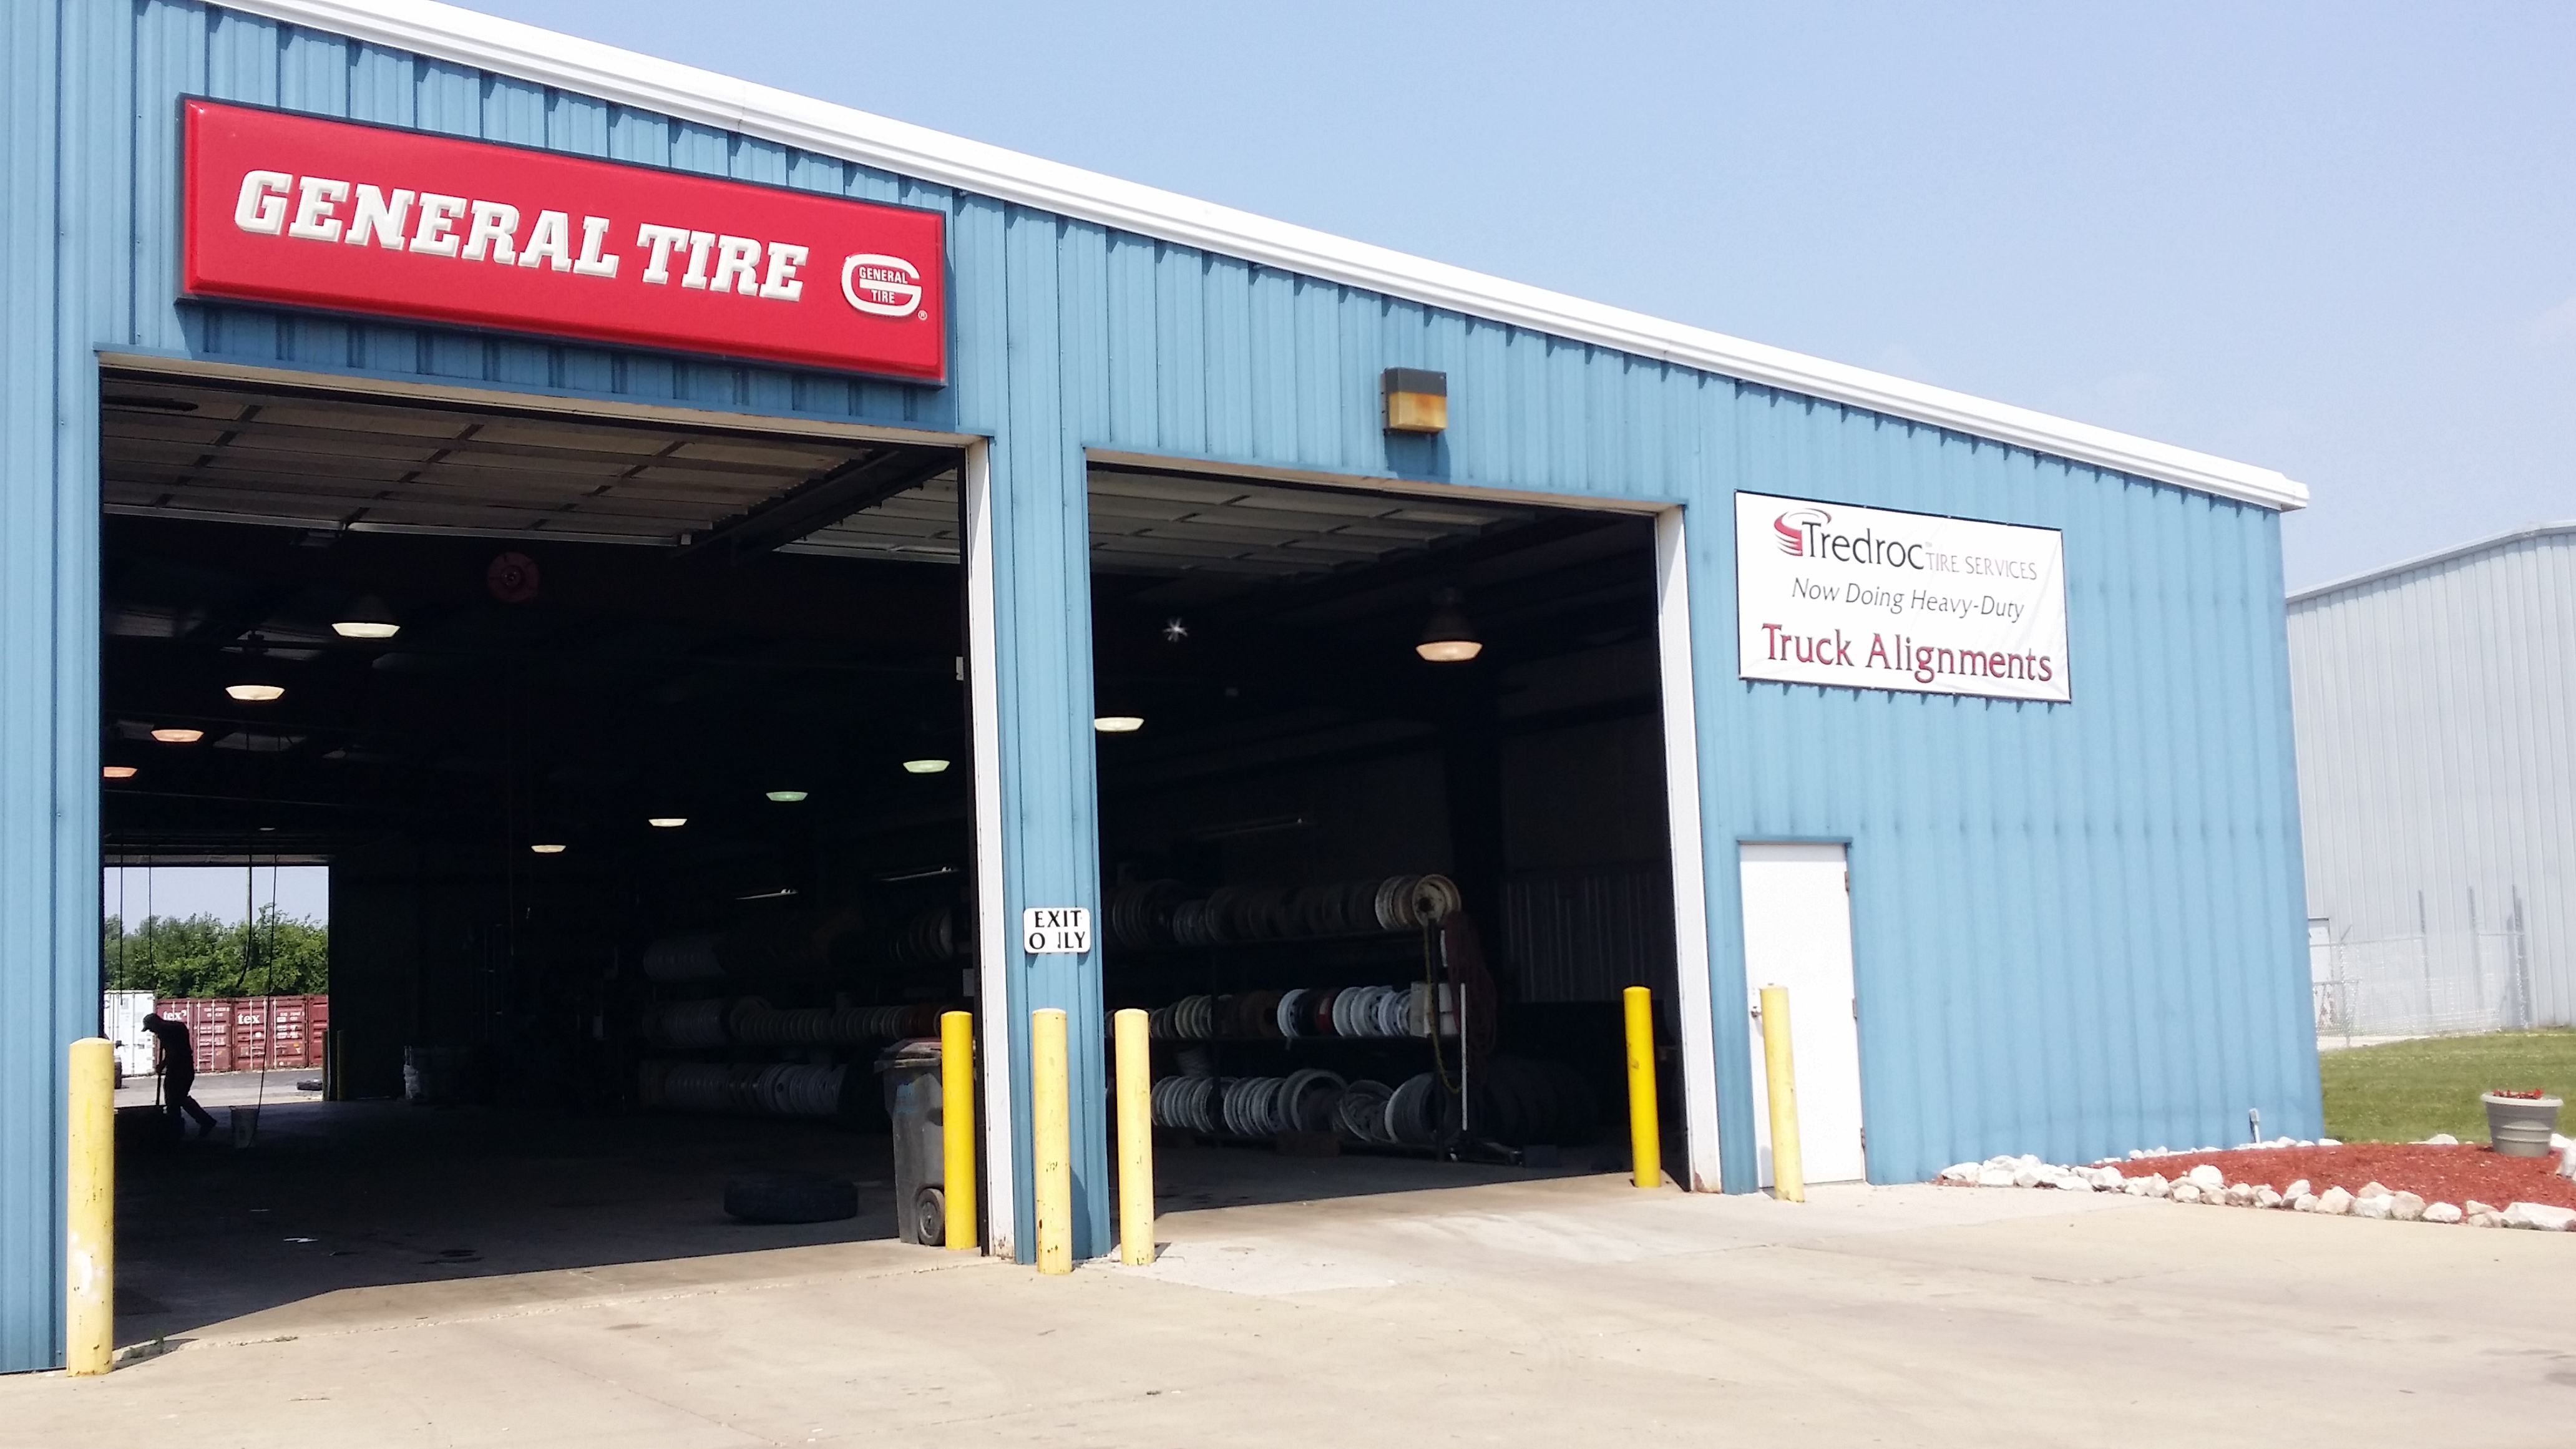 tredroc tire services in lafayette in 47905